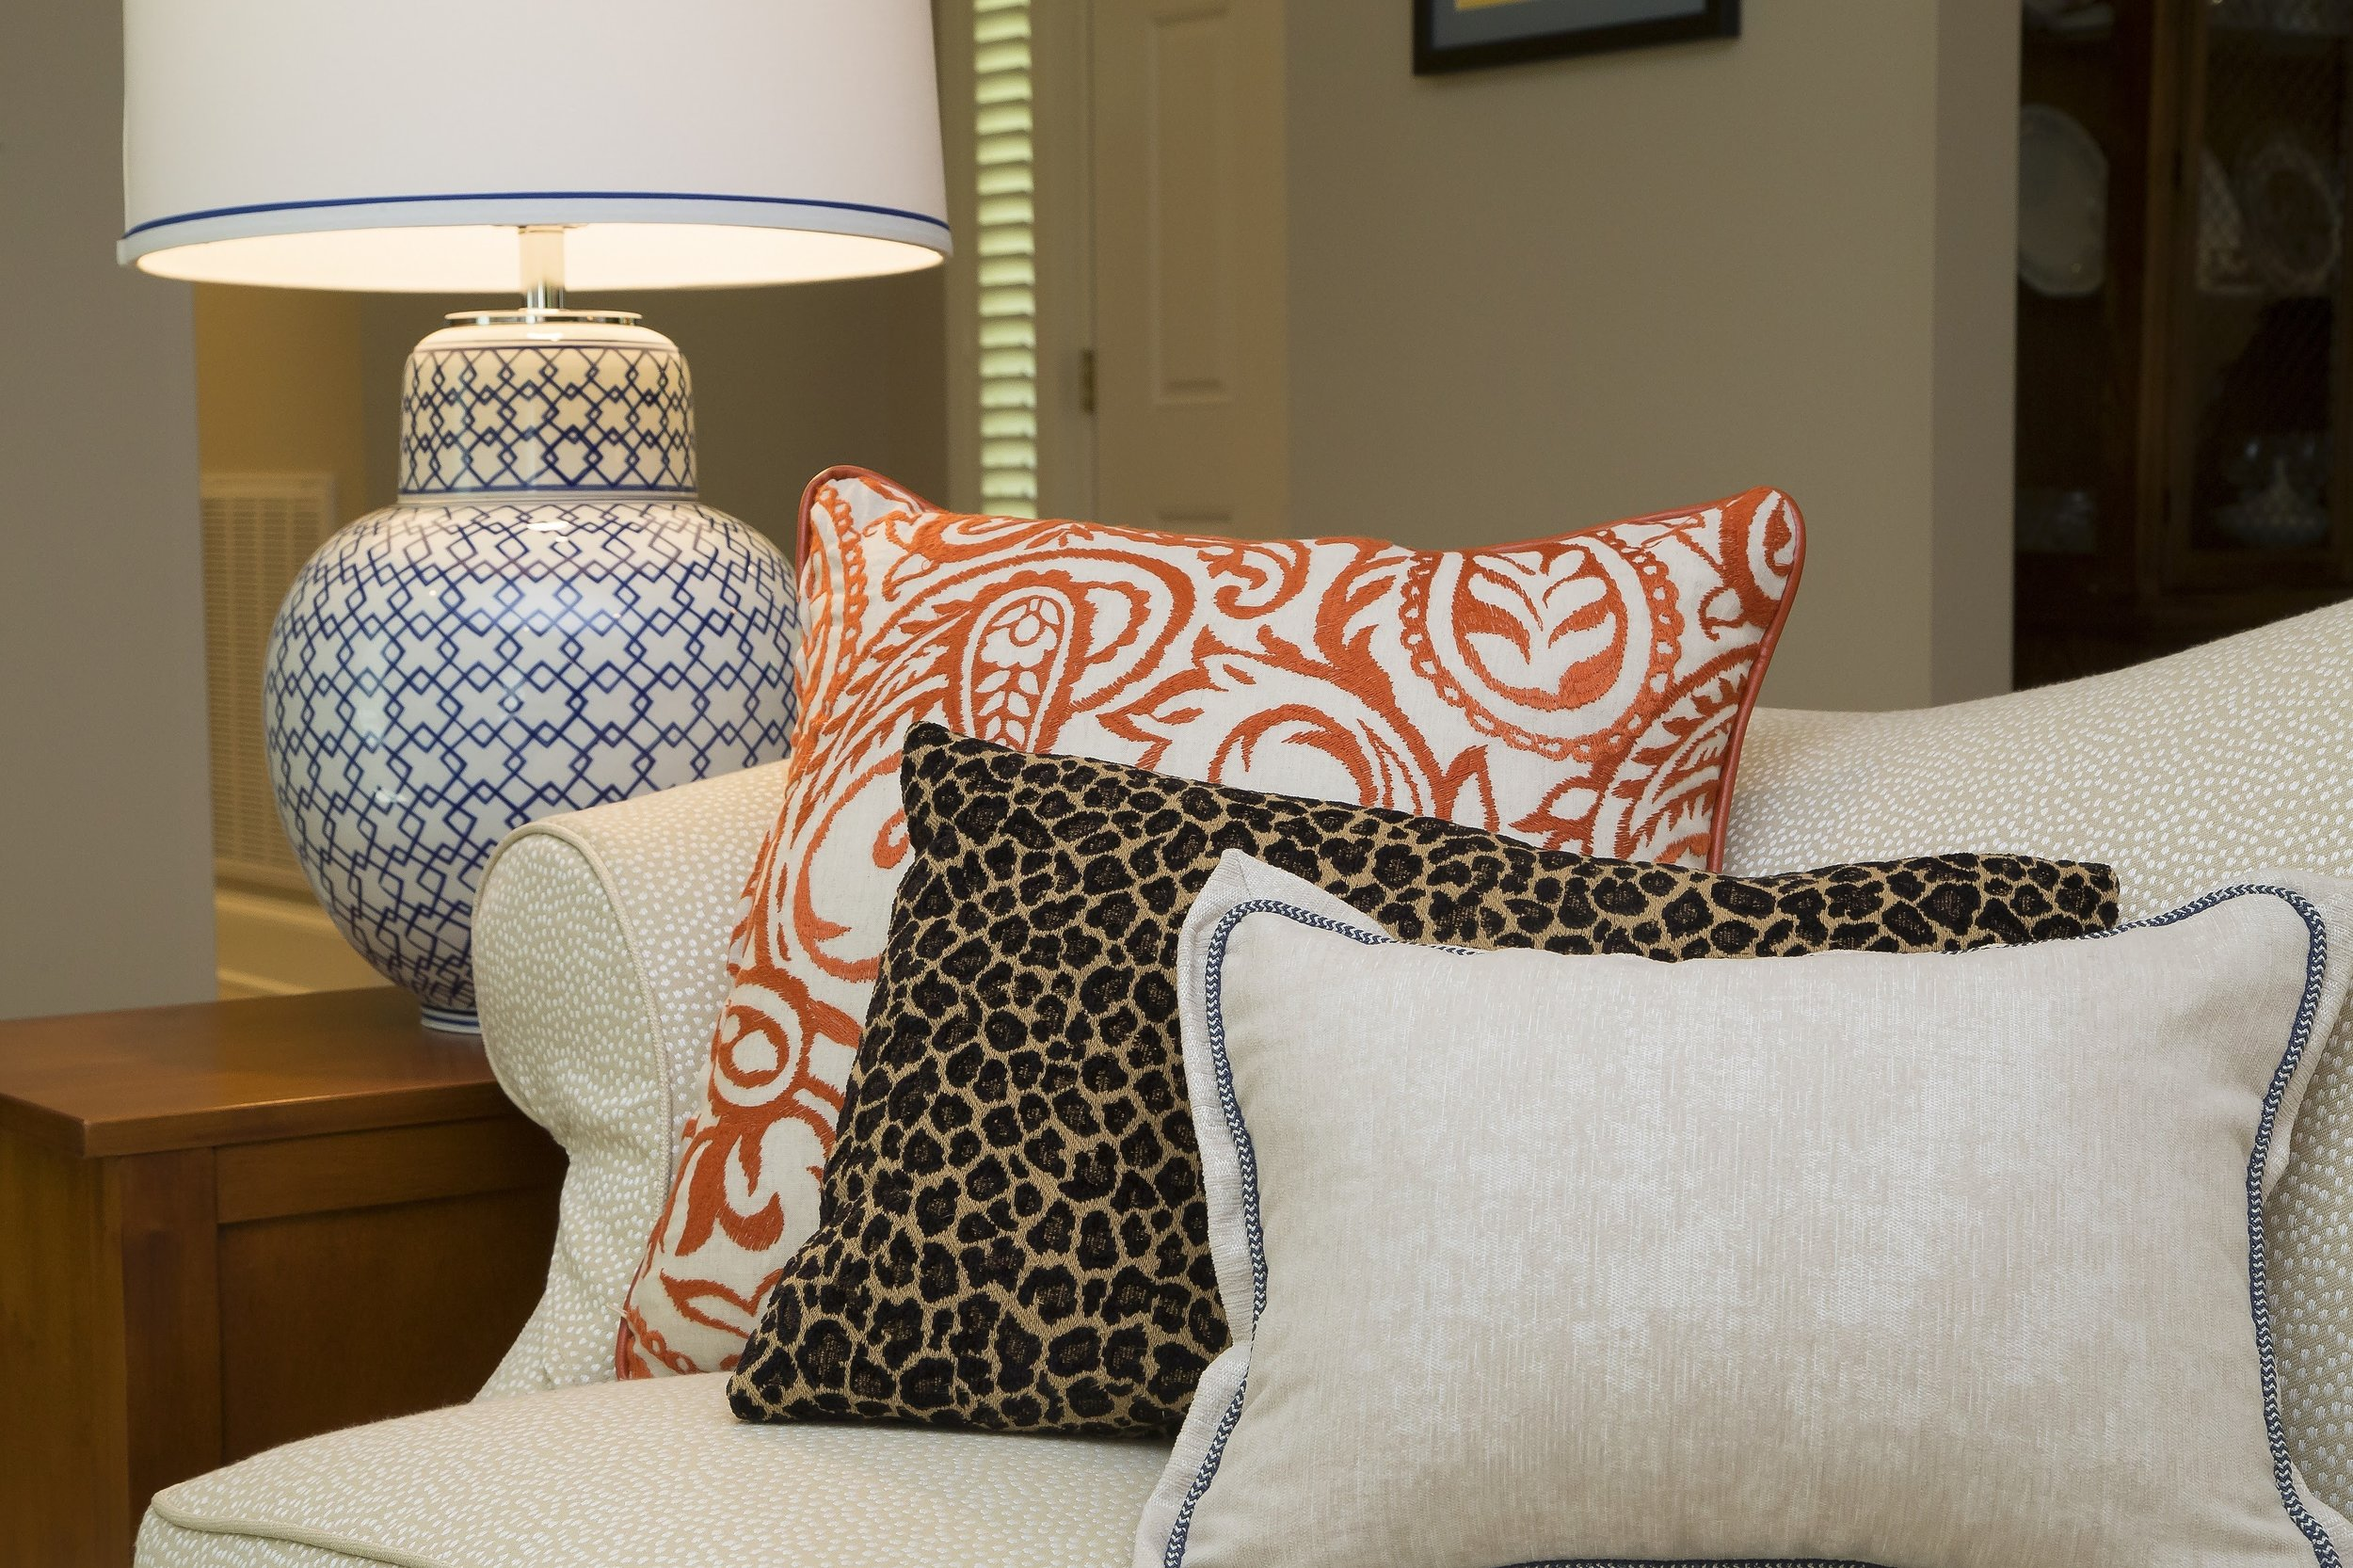 Do accent pillows have an impact? We think they do!